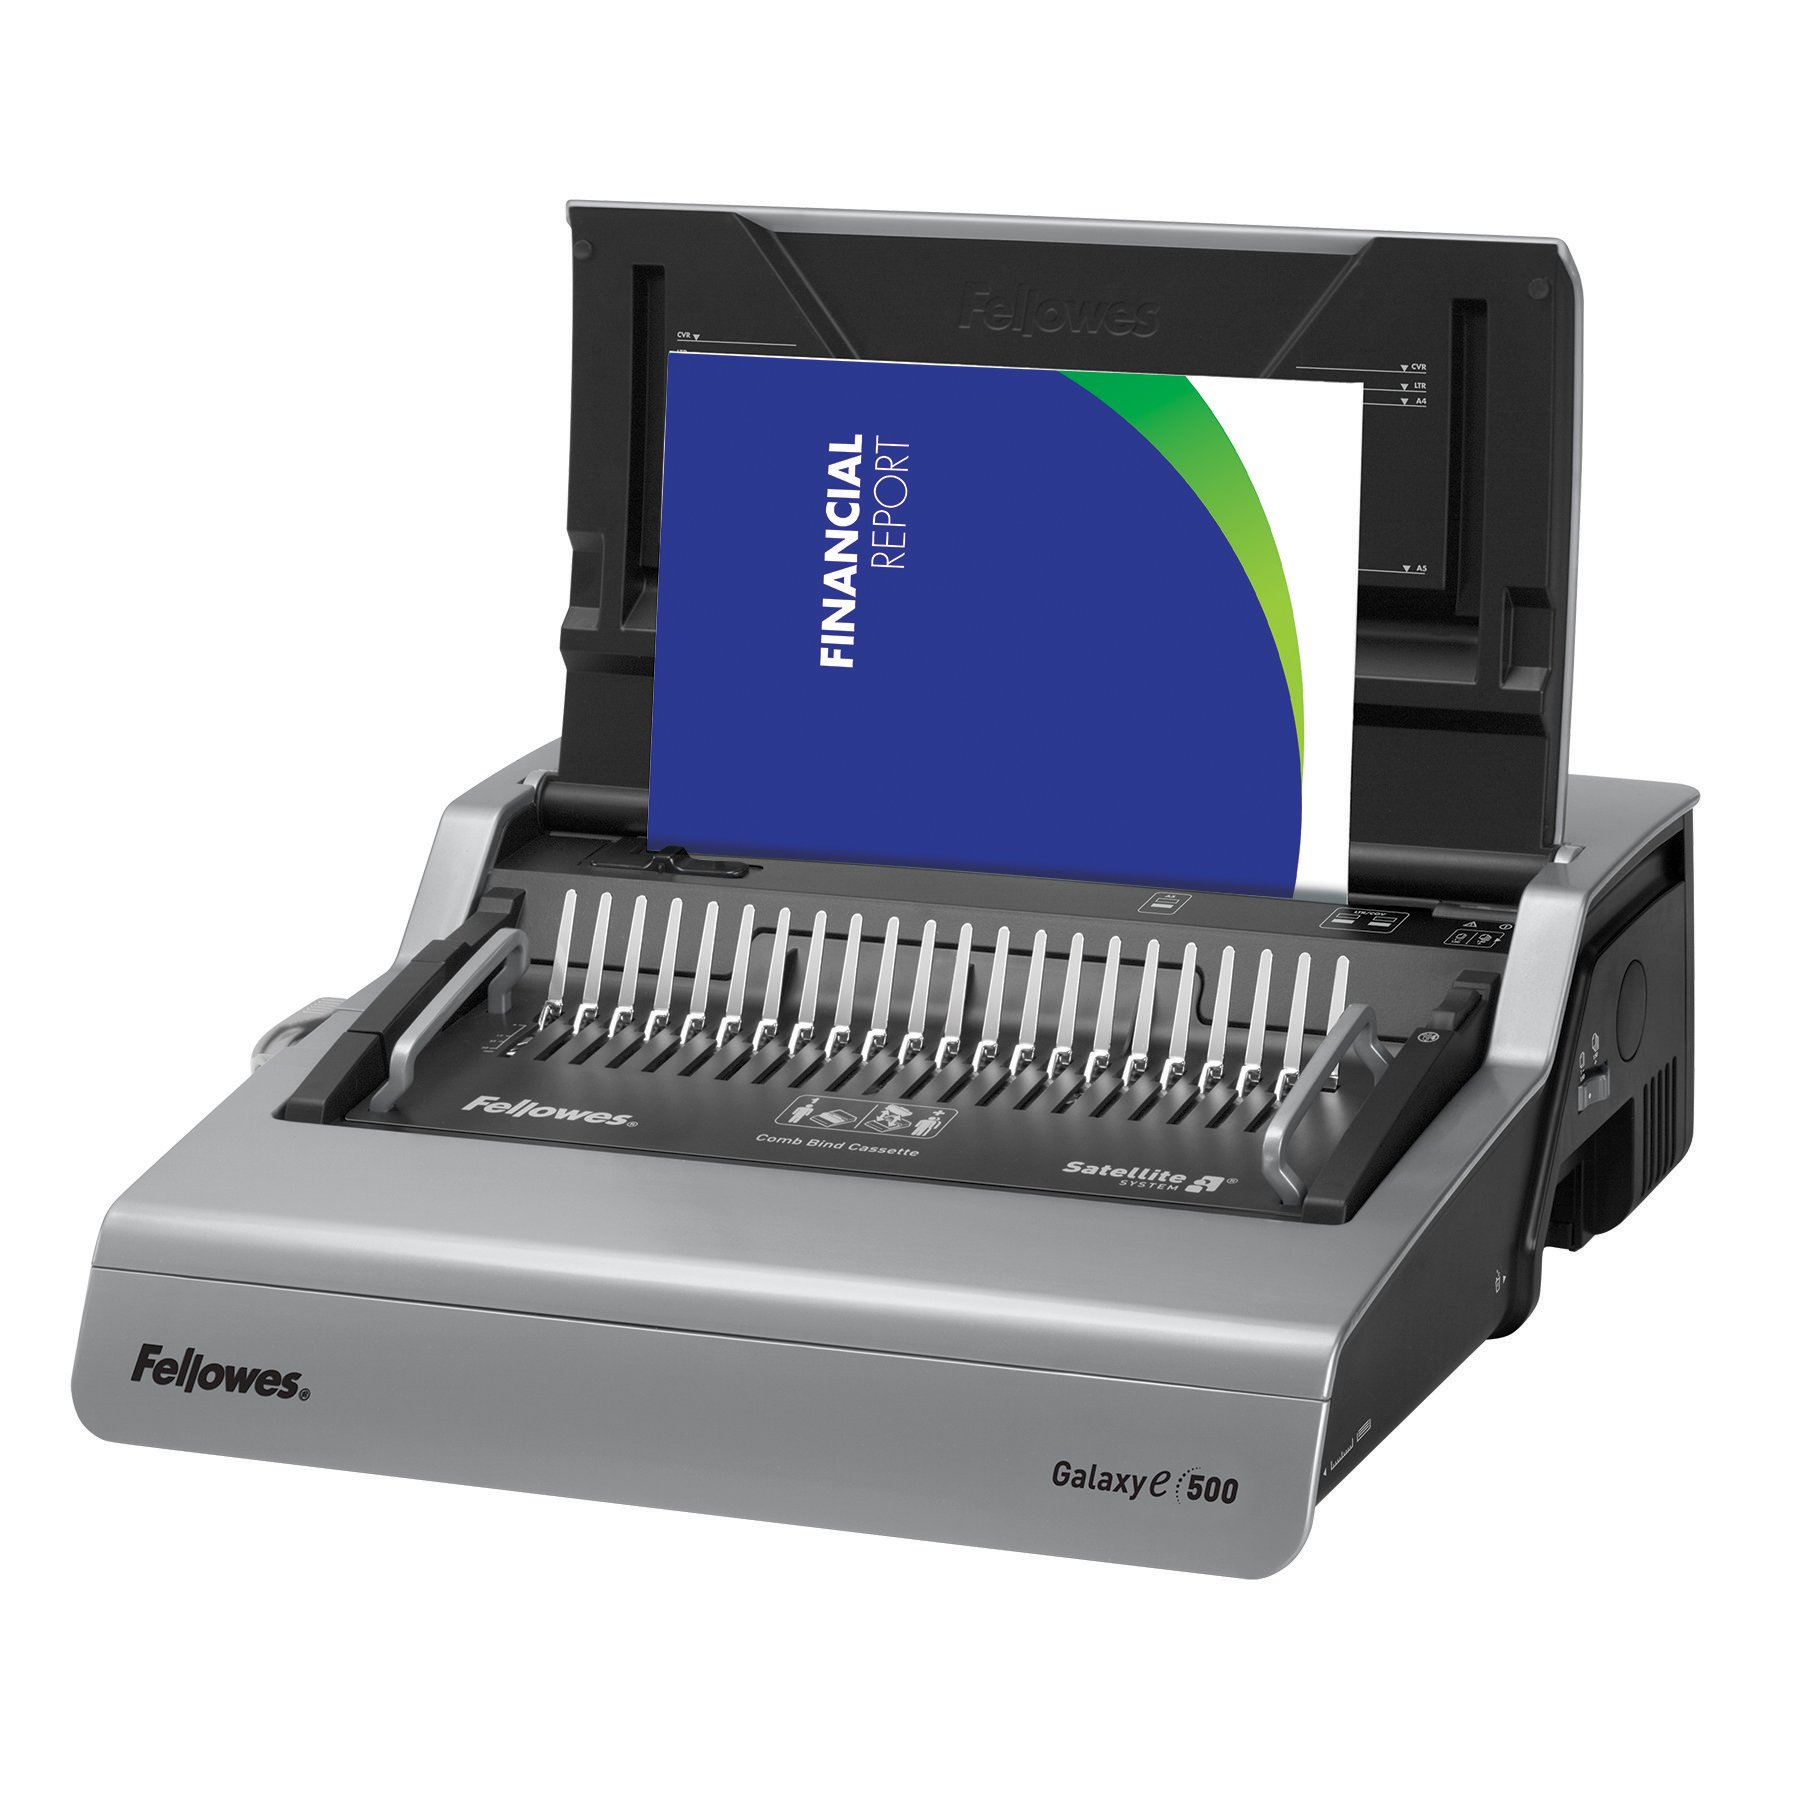 Fellowes 5218301 Galaxy 500 Electric Comb Binding System, 500 Sheets, 19 5/8x17 3/4x6 1/2, Gray by Fellowes (Image #1)